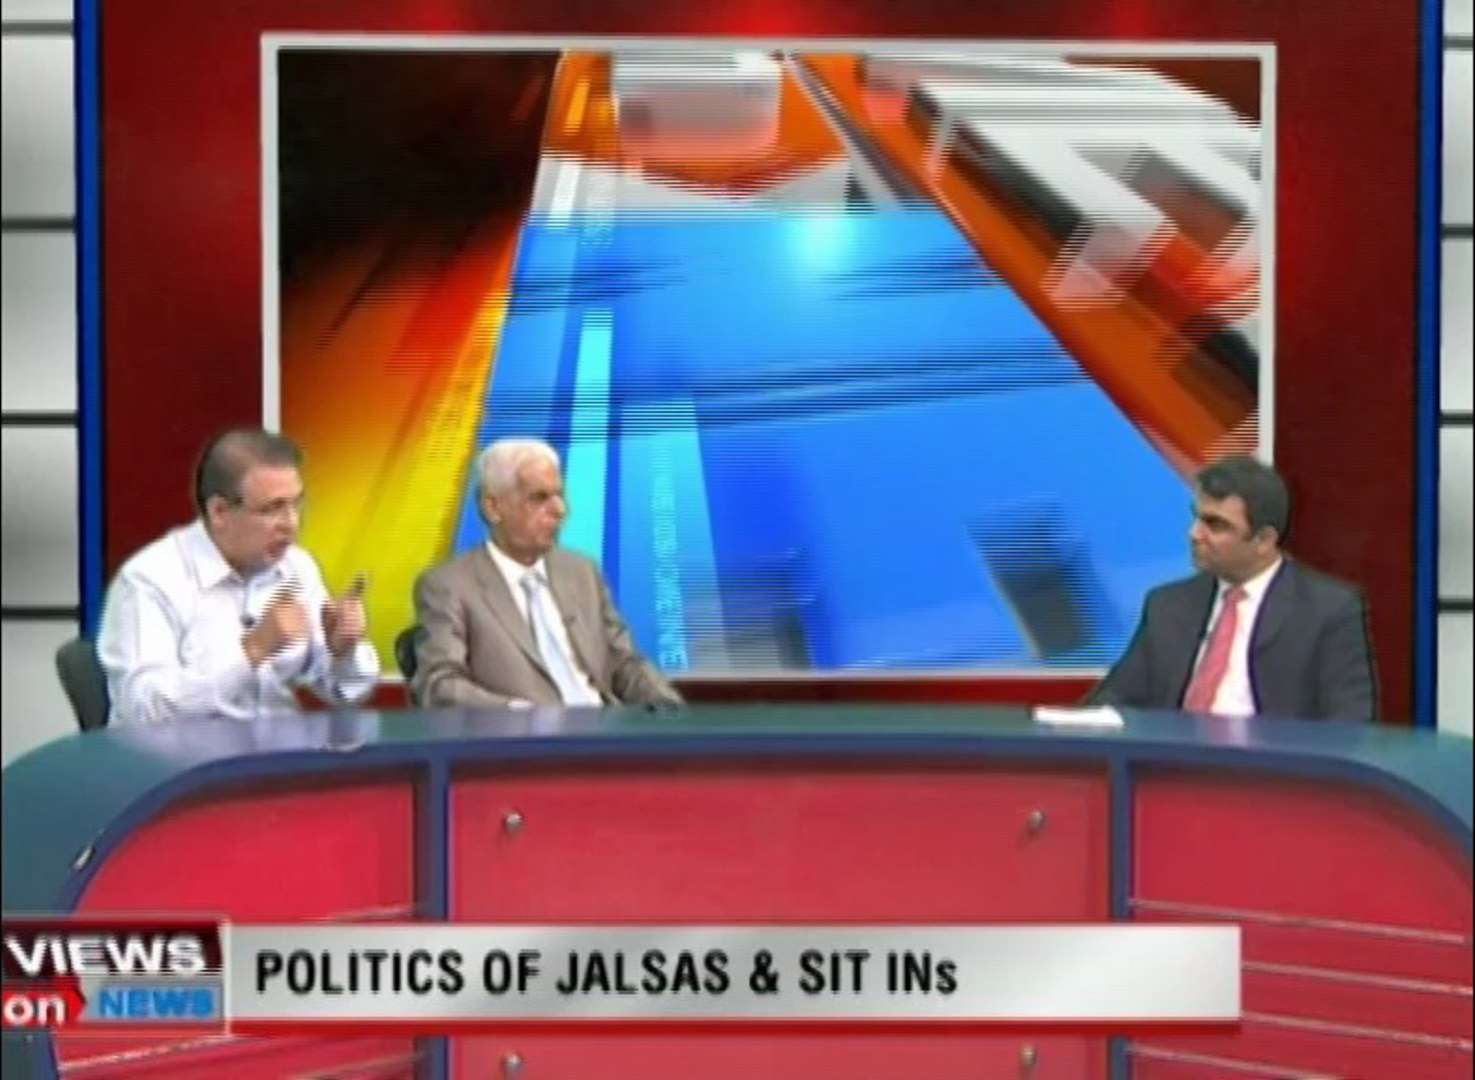 Programme: Views On News... Topic: Politics Of Jalsas And Sit In's